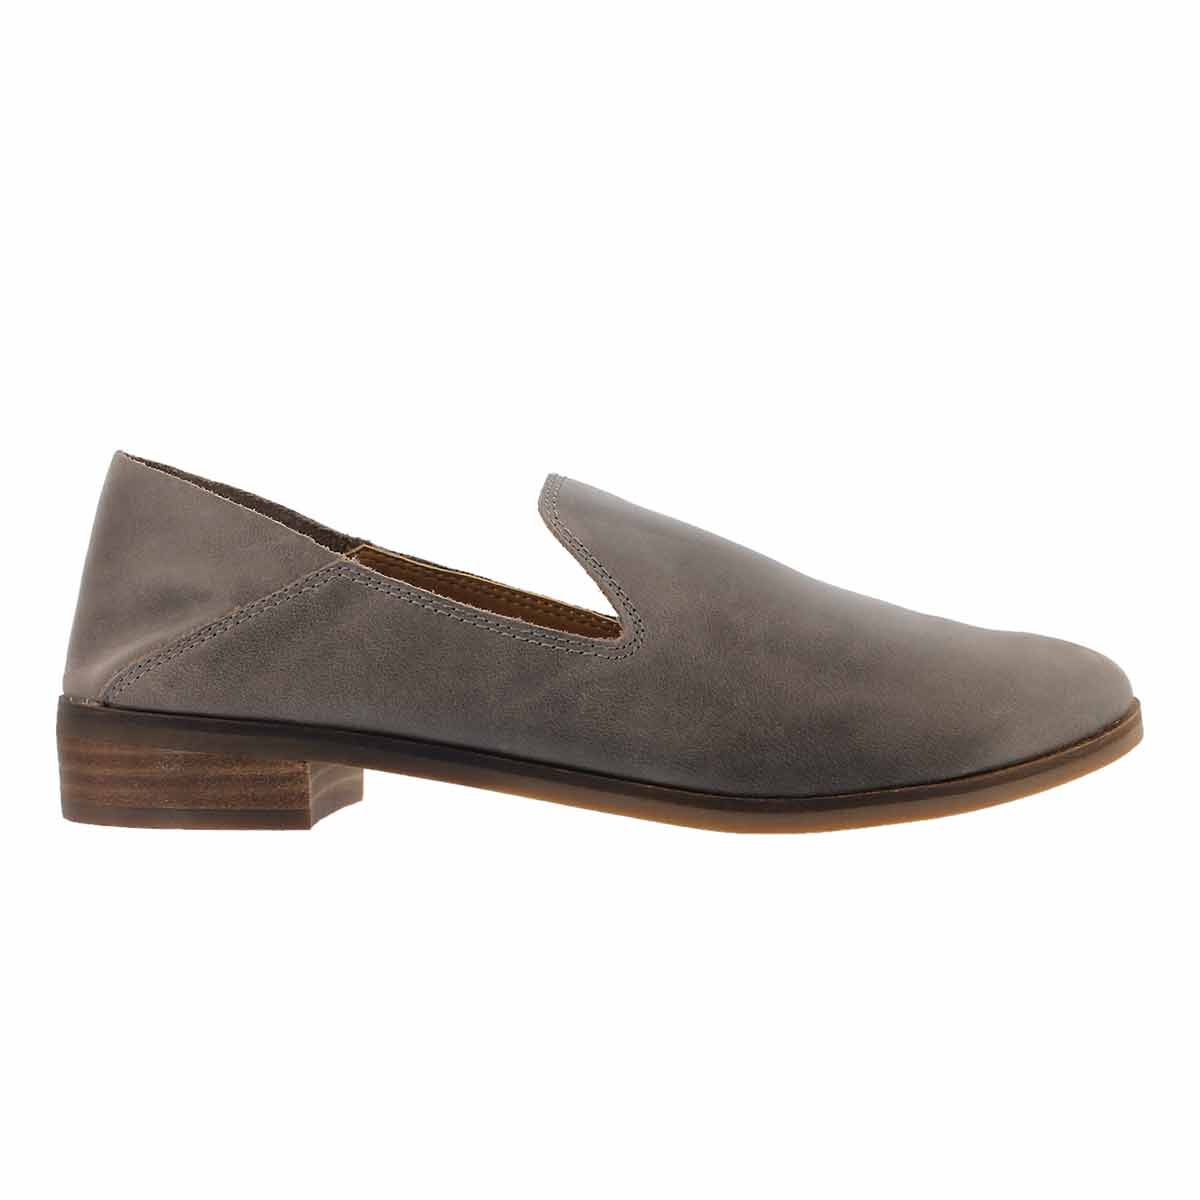 Lds Cahill driftwood casual slip on shoe